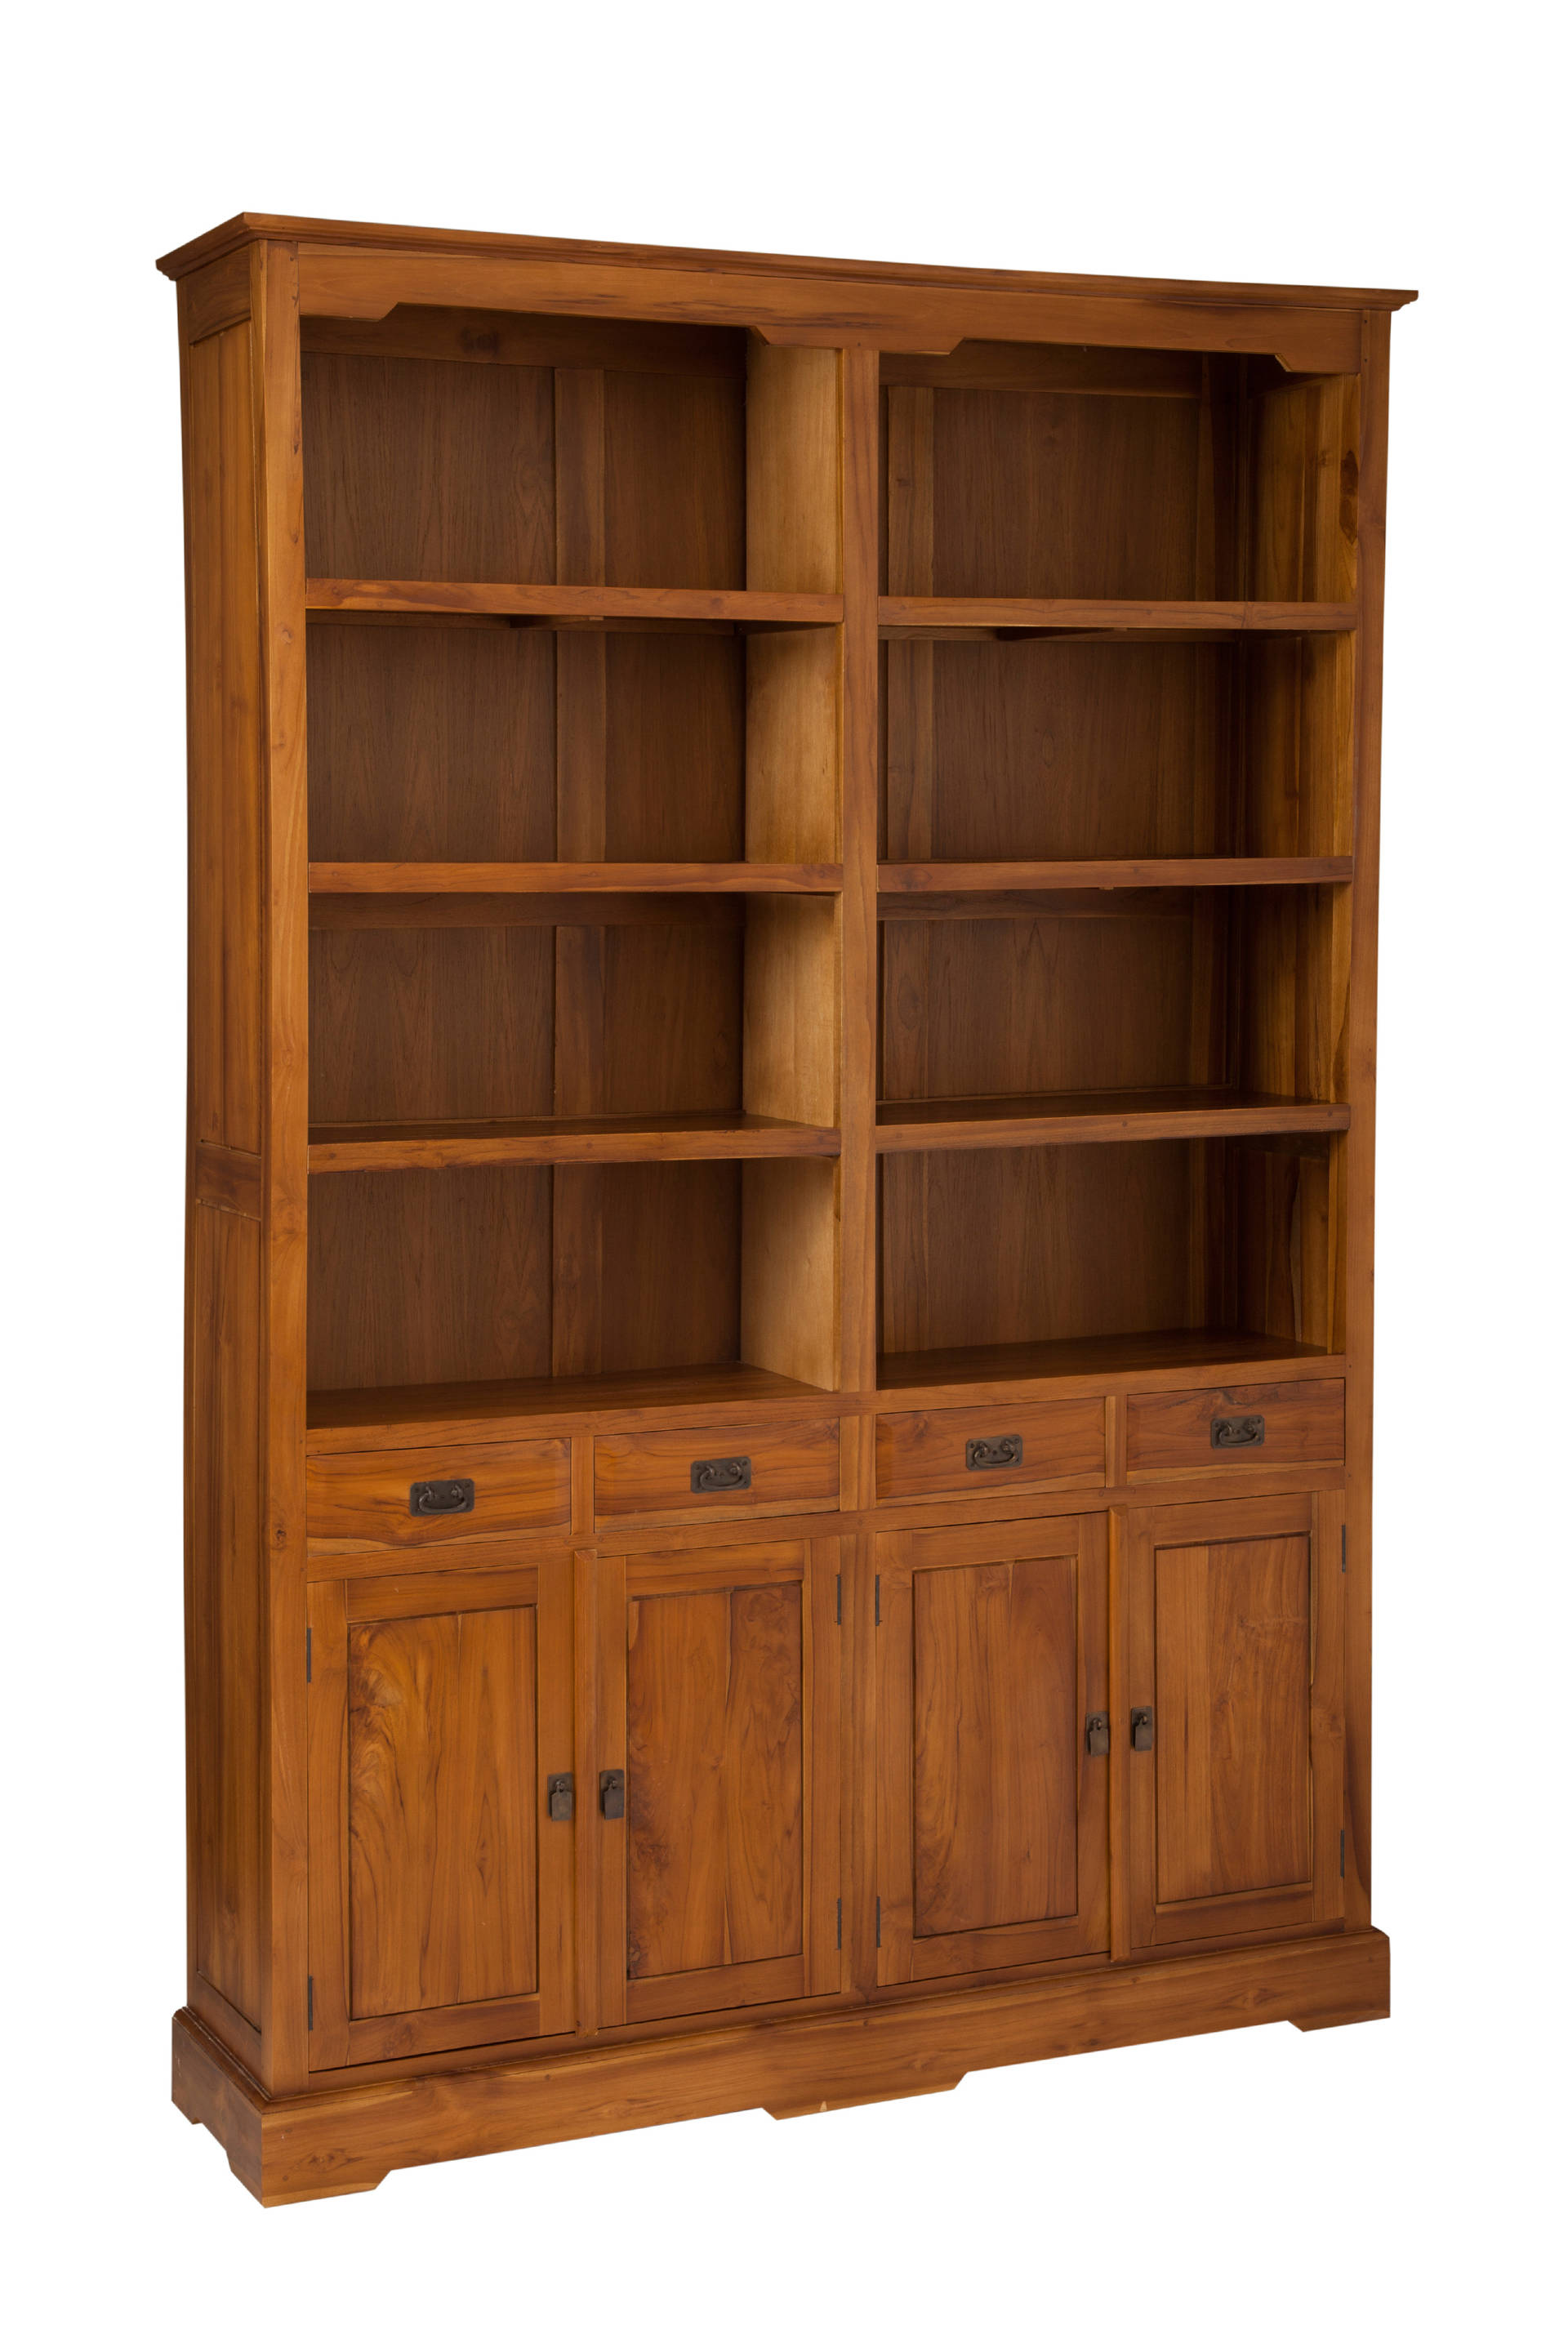 DBL BOOKCASE 160x230 DTM+WD